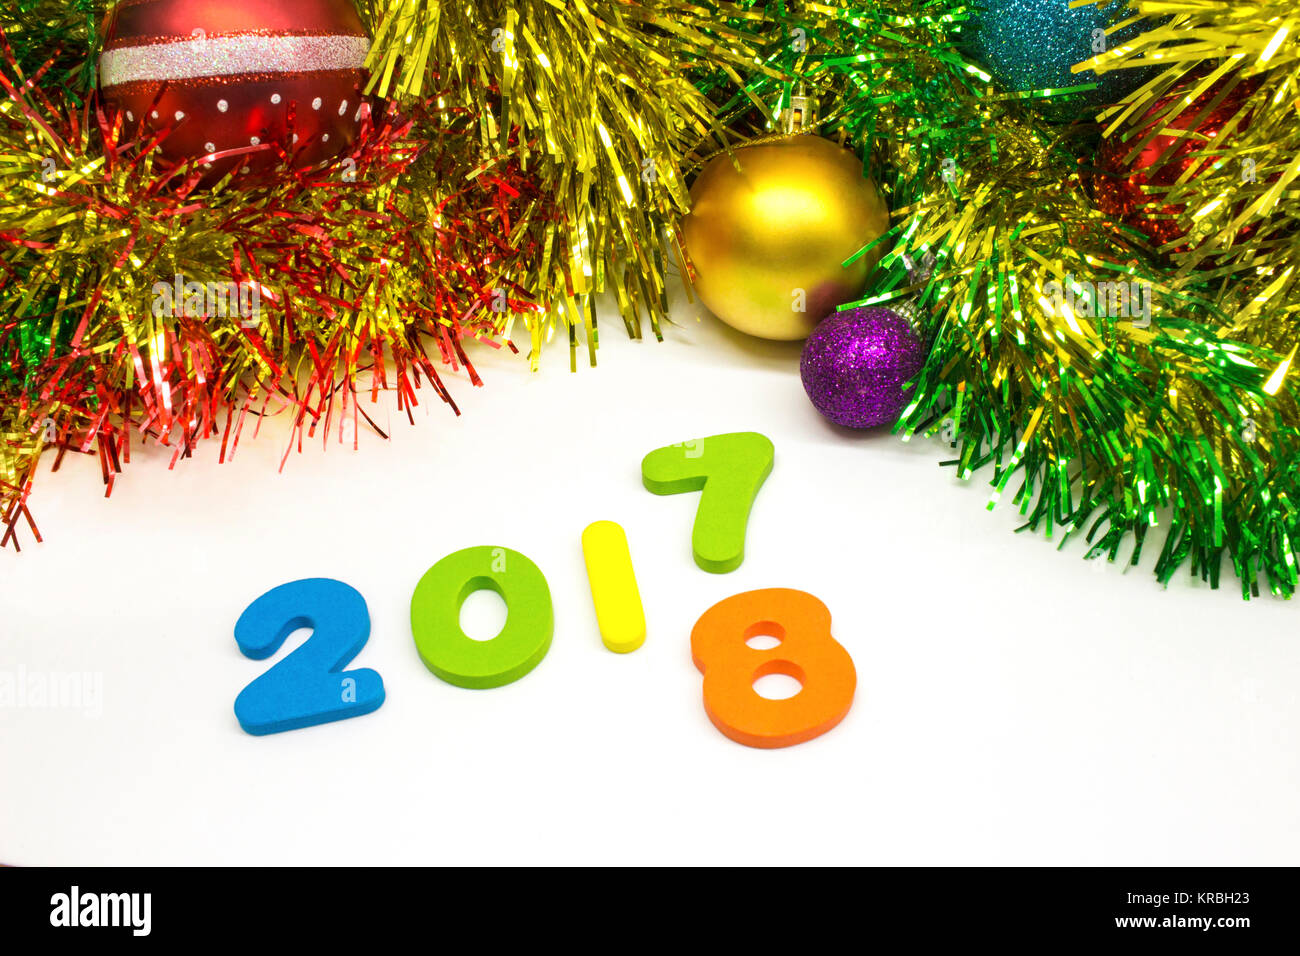 2018 happy new year tinsel and Christmas balls decoration background - Stock Image